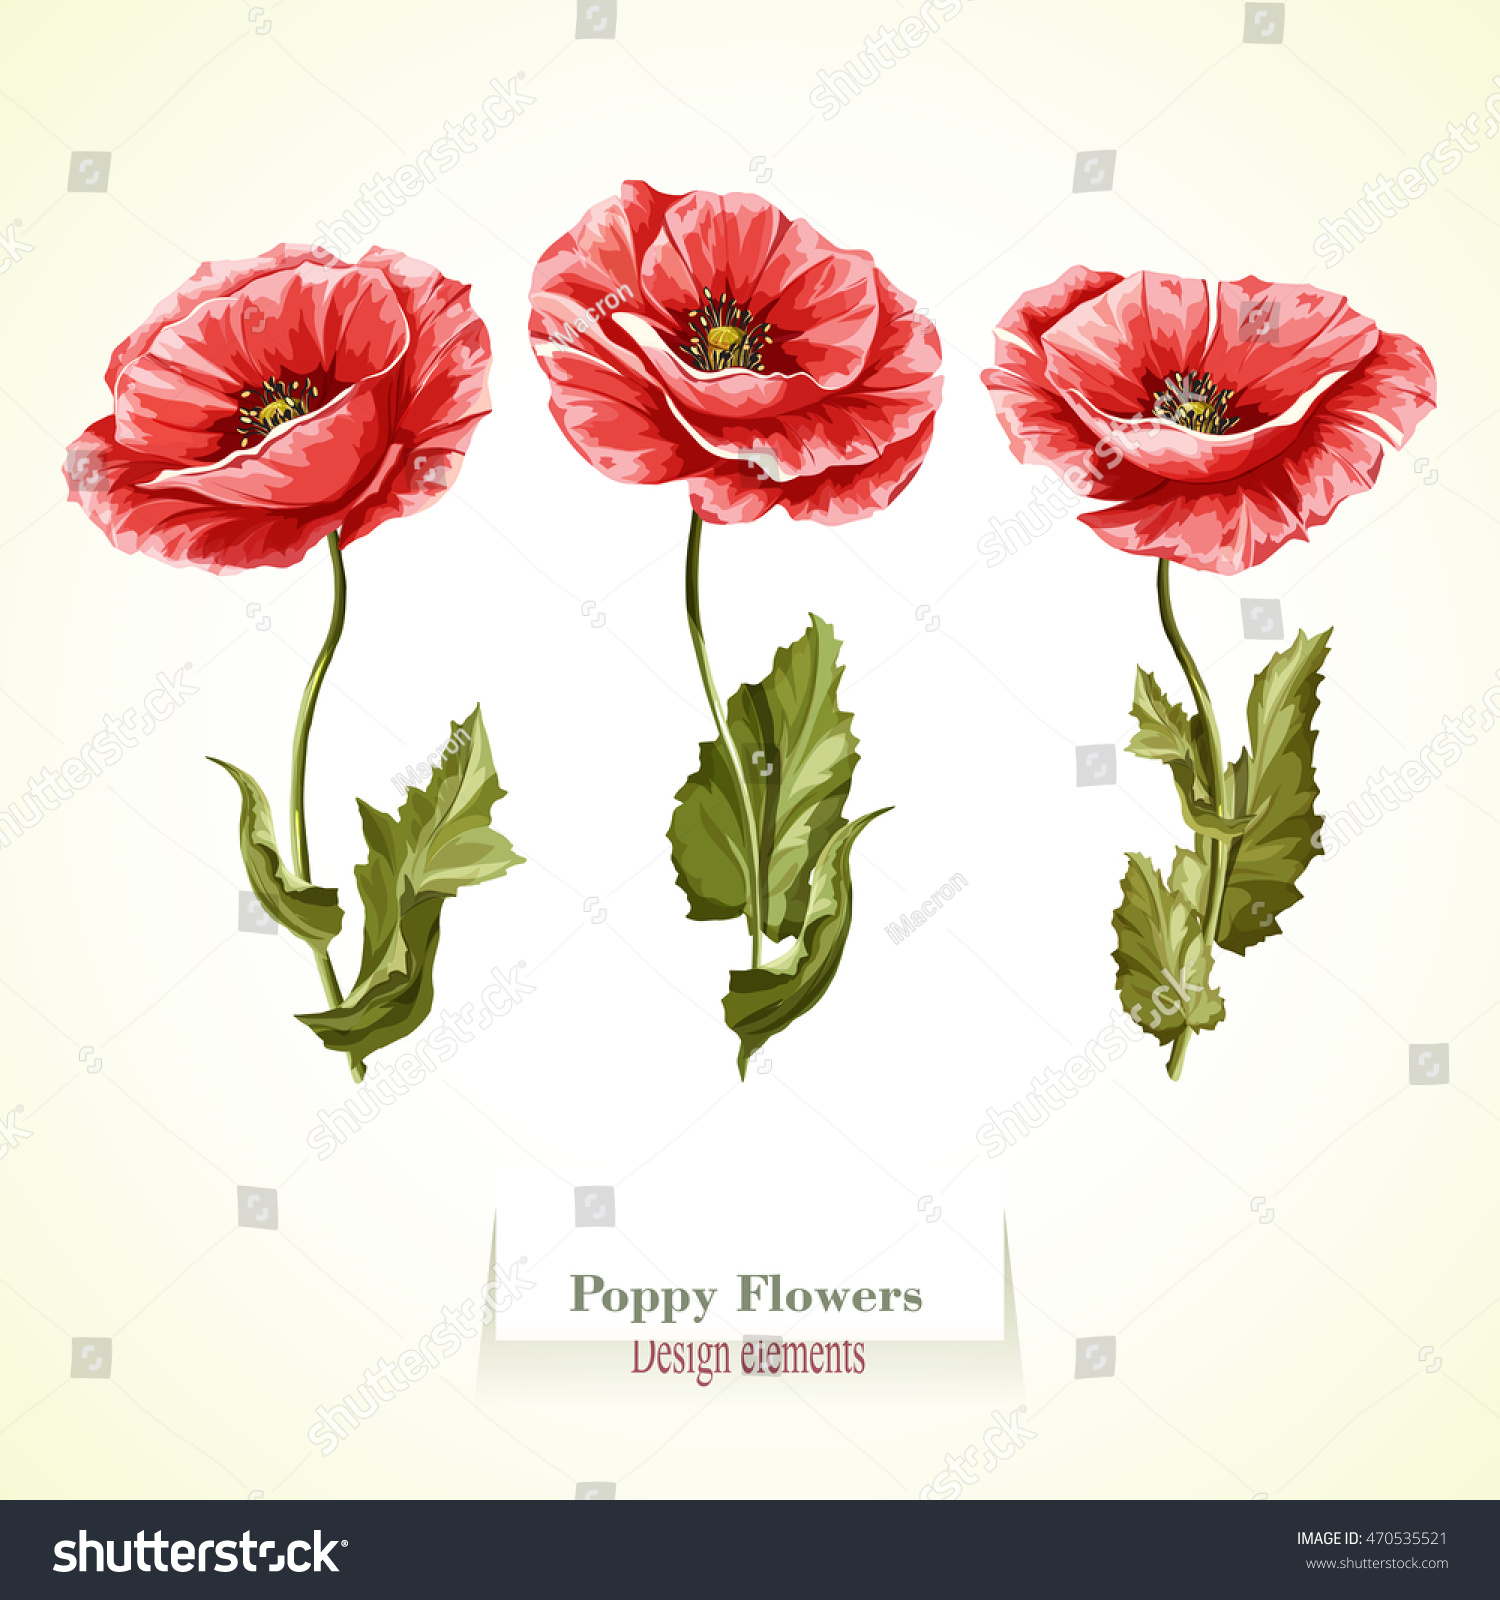 Poppy Flowers Illustration Watercolor Hand Drawn Stock Vector